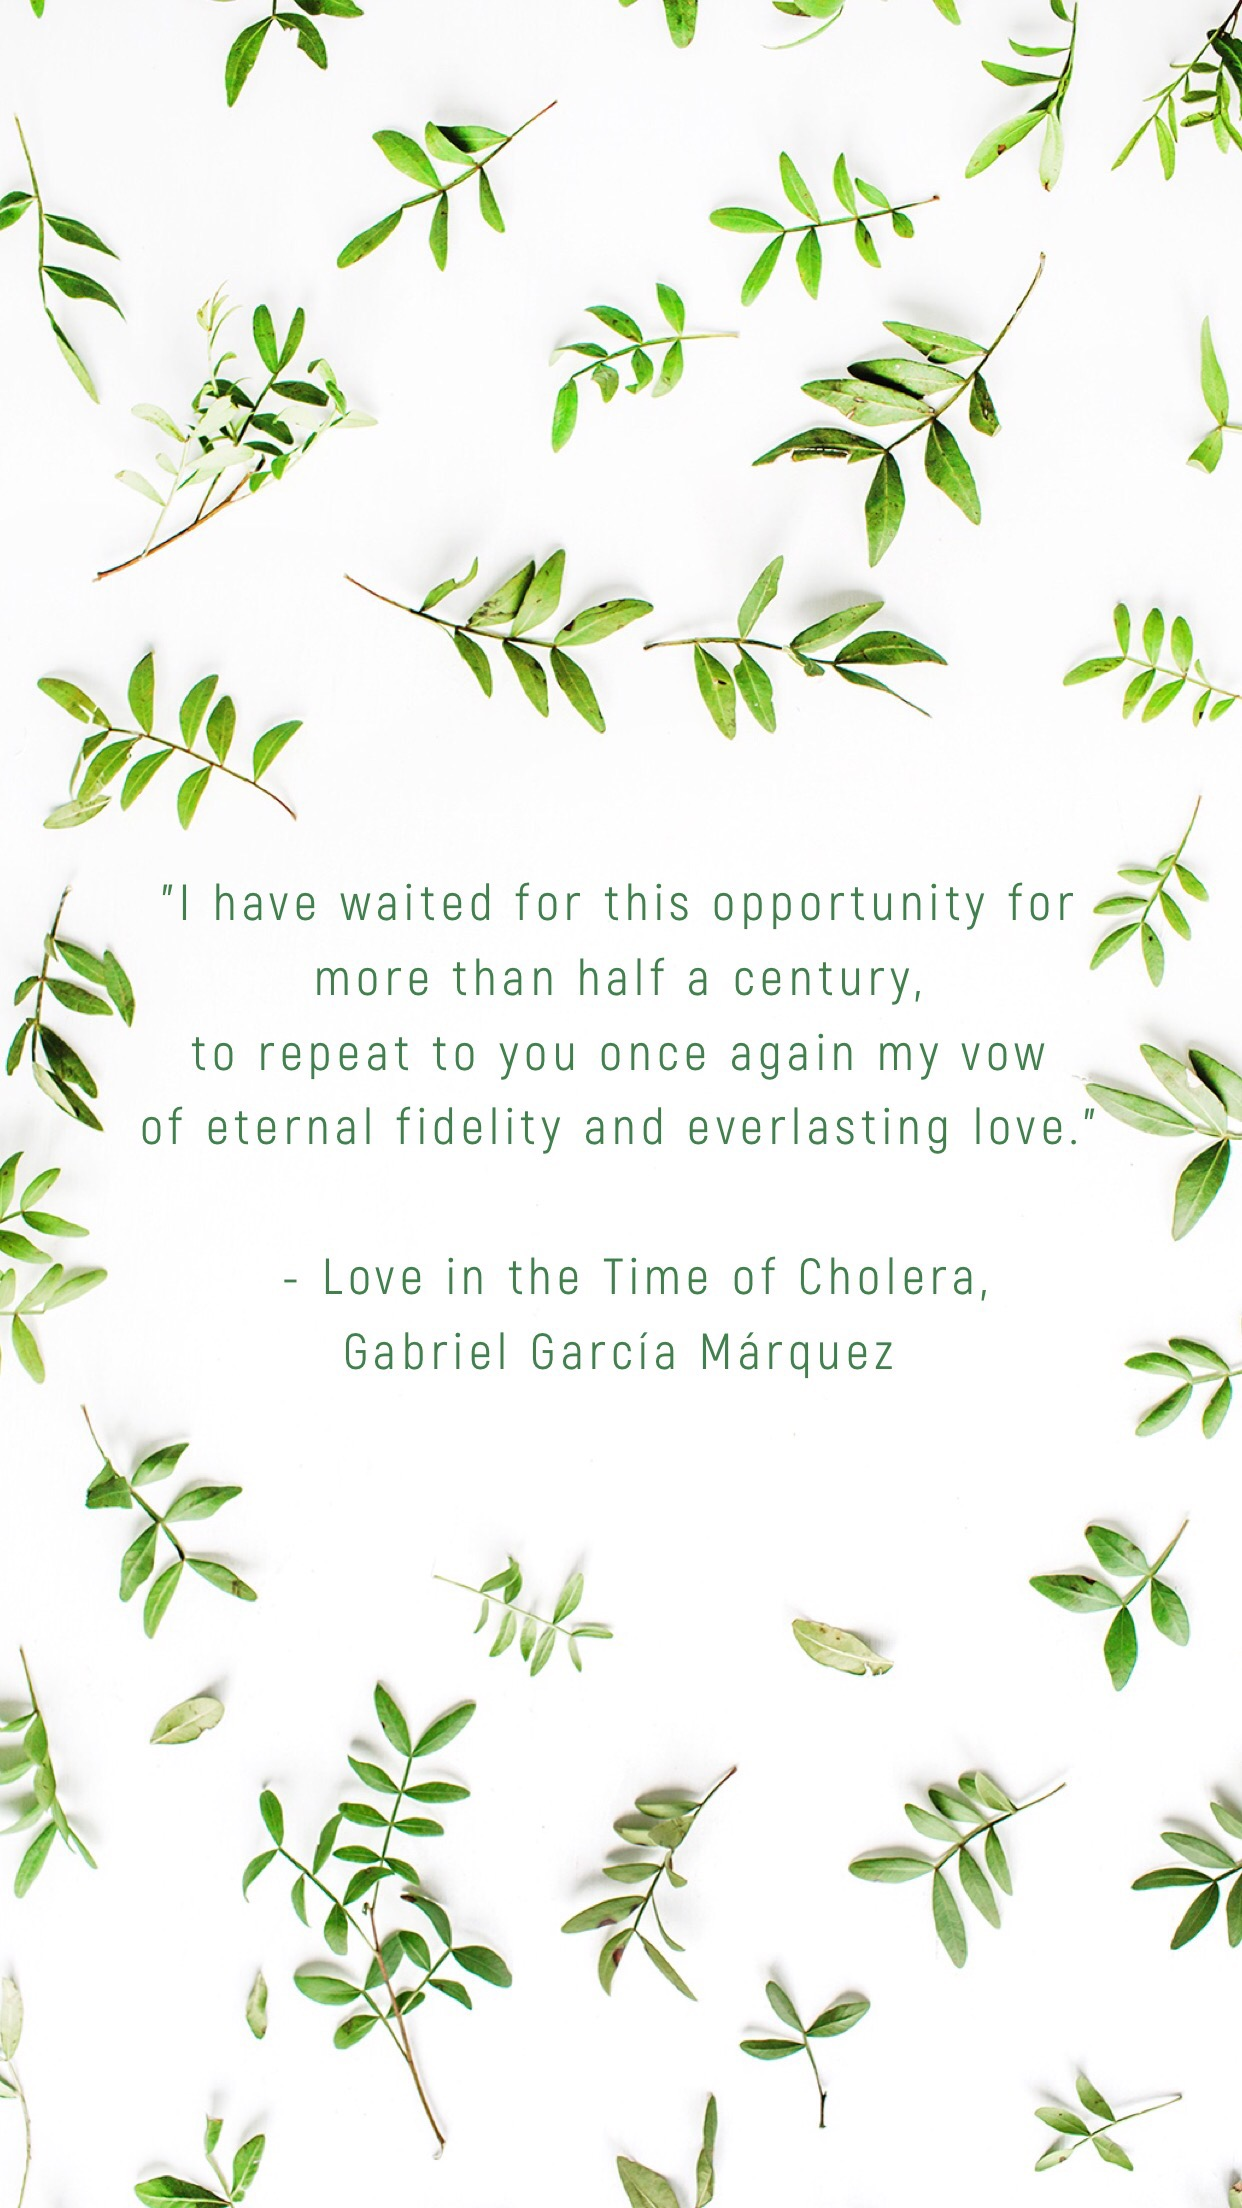 Quotes About Loving Books Books Quotes Love In The Time Of Cholera Kbooklover Living